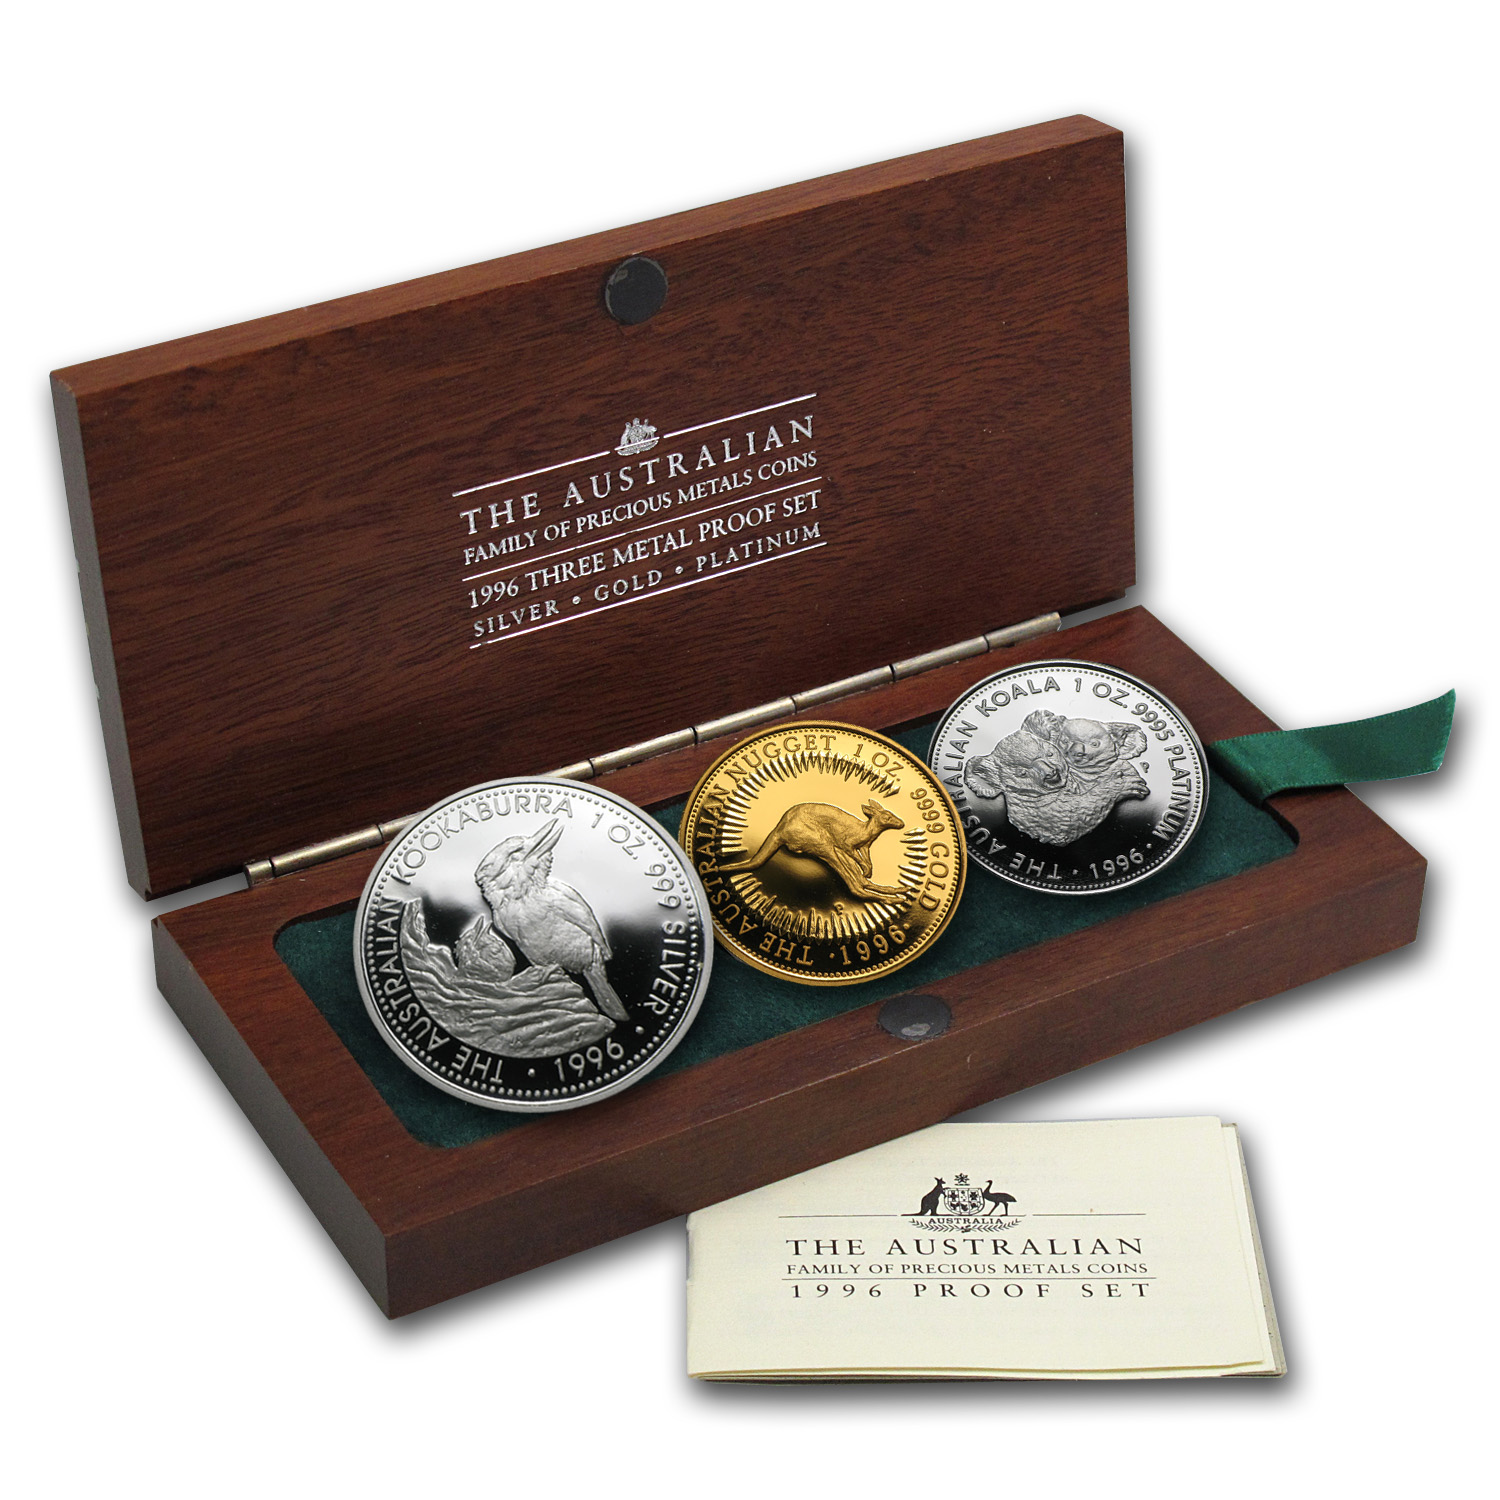 1996 3-Coin Australian Family of Precious Metals Proof Set